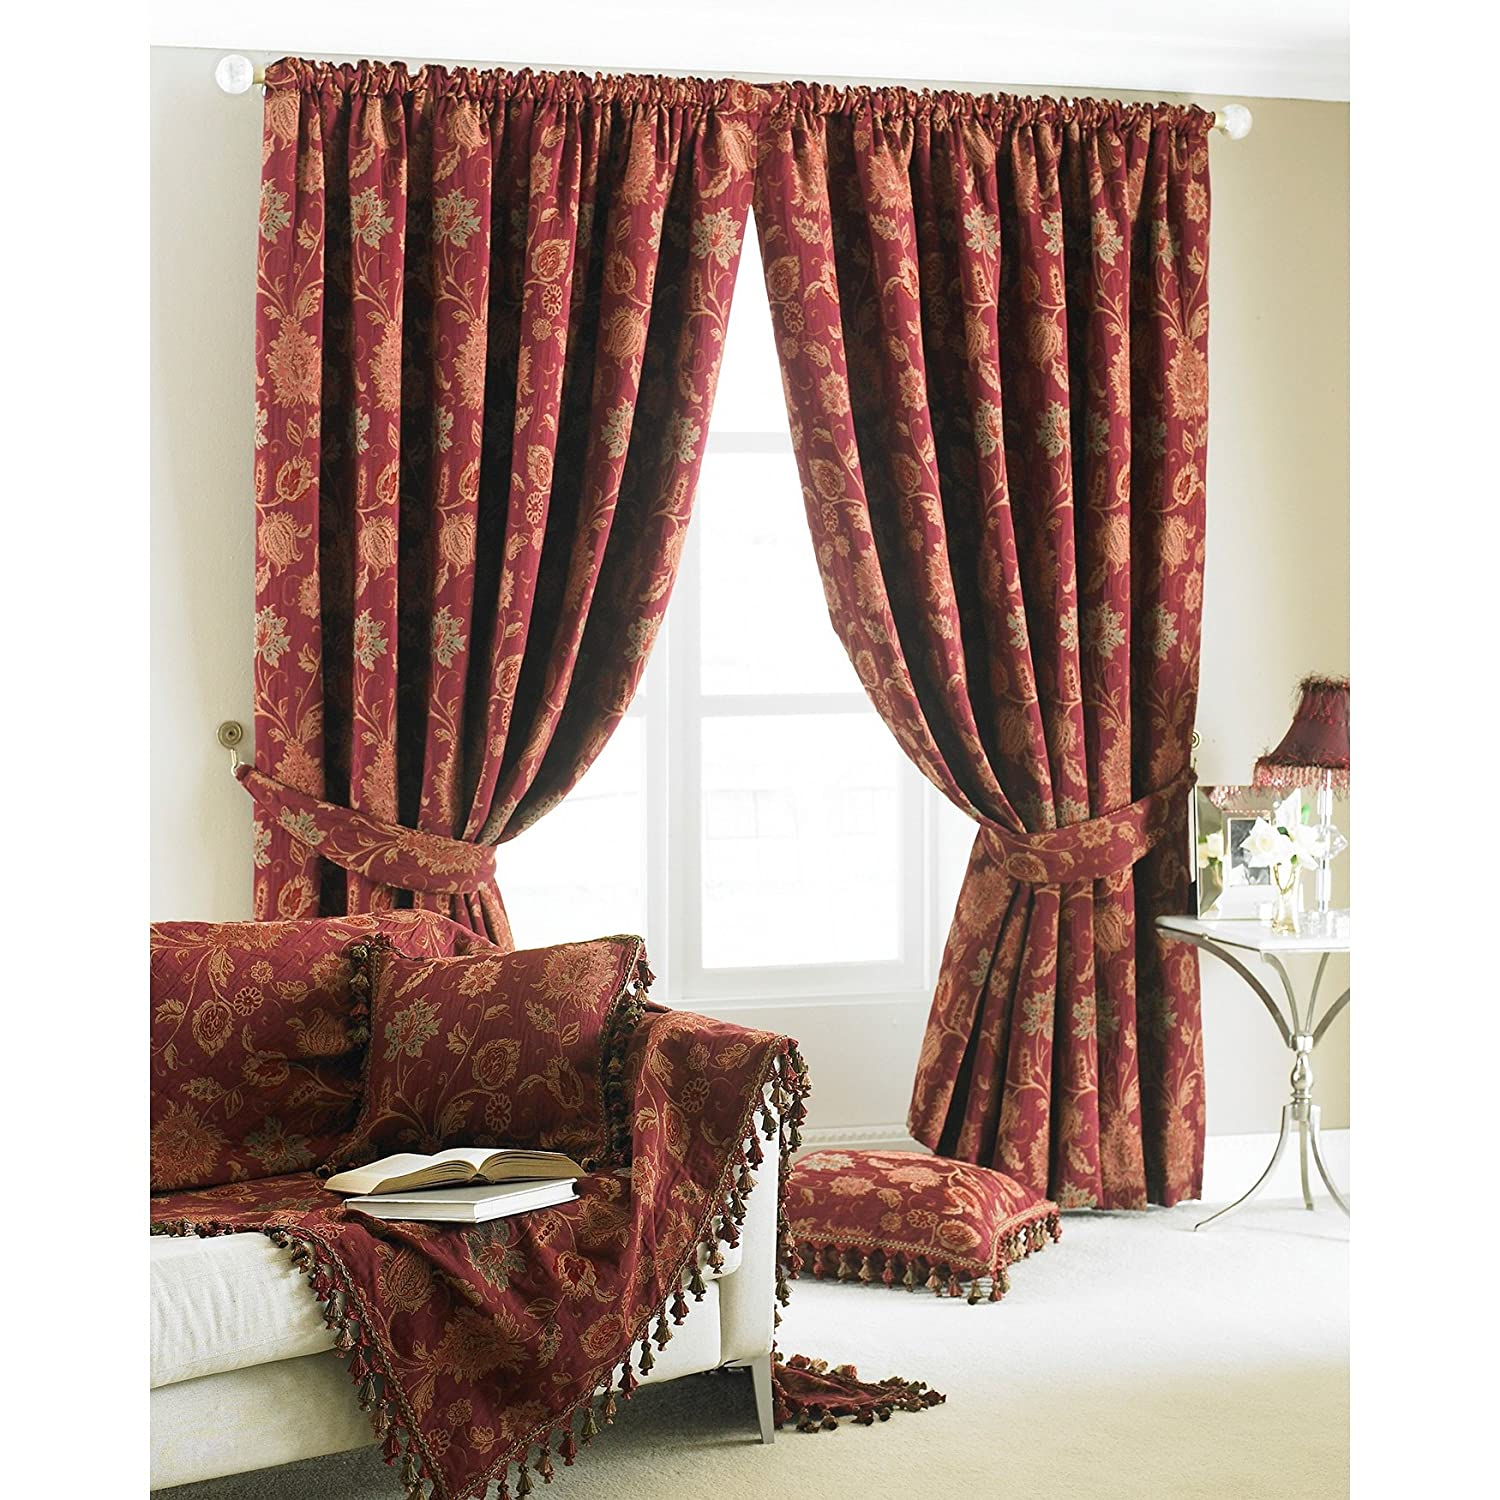 Paoletti Zurich Floral Chenille Jacquard Lined Pencil Pleat Curtains, Gold,  66 X 72 Inch: Amazon.co.uk: Kitchen U0026 Home